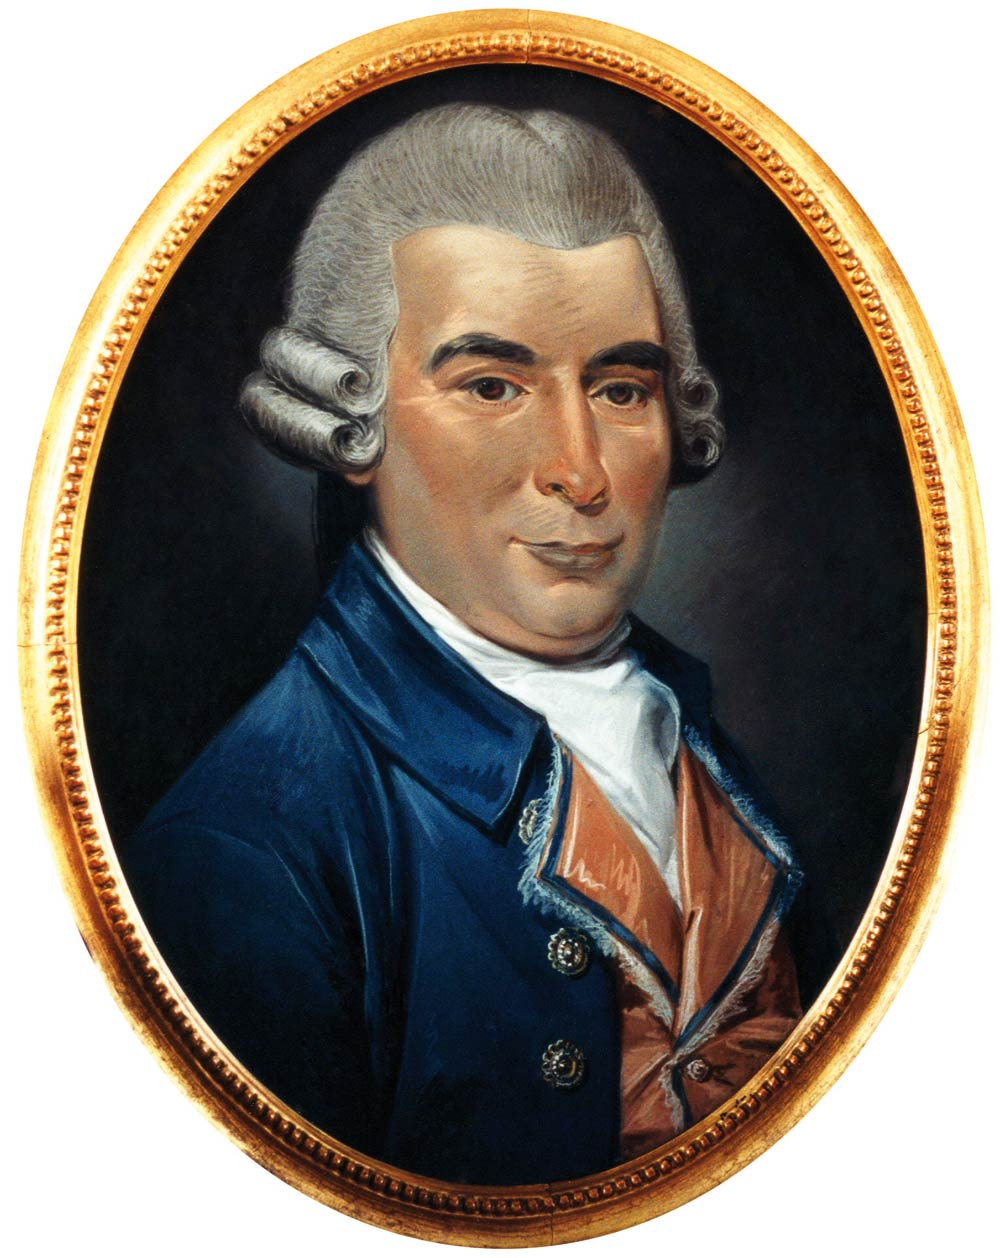 William Hardy in 1785 by Huquier